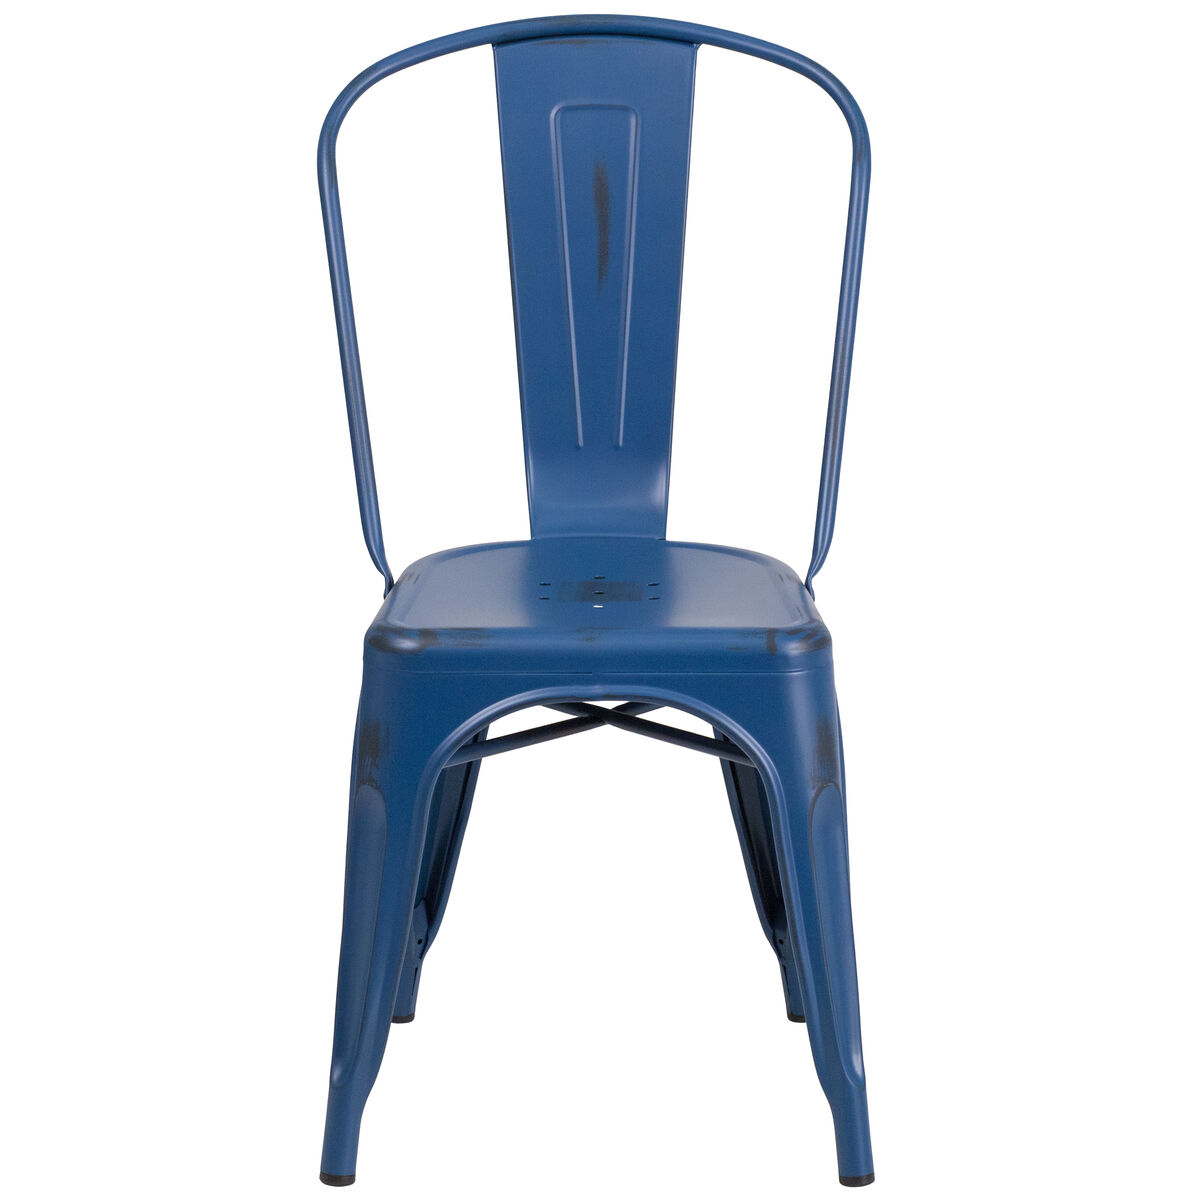 Our Distressed Antique Blue Metal Indoor-Outdoor Stackable Chair is on sale  now. - Distressed Blue Metal Chair ET-3534-AB-GG StackChairs4Less.com